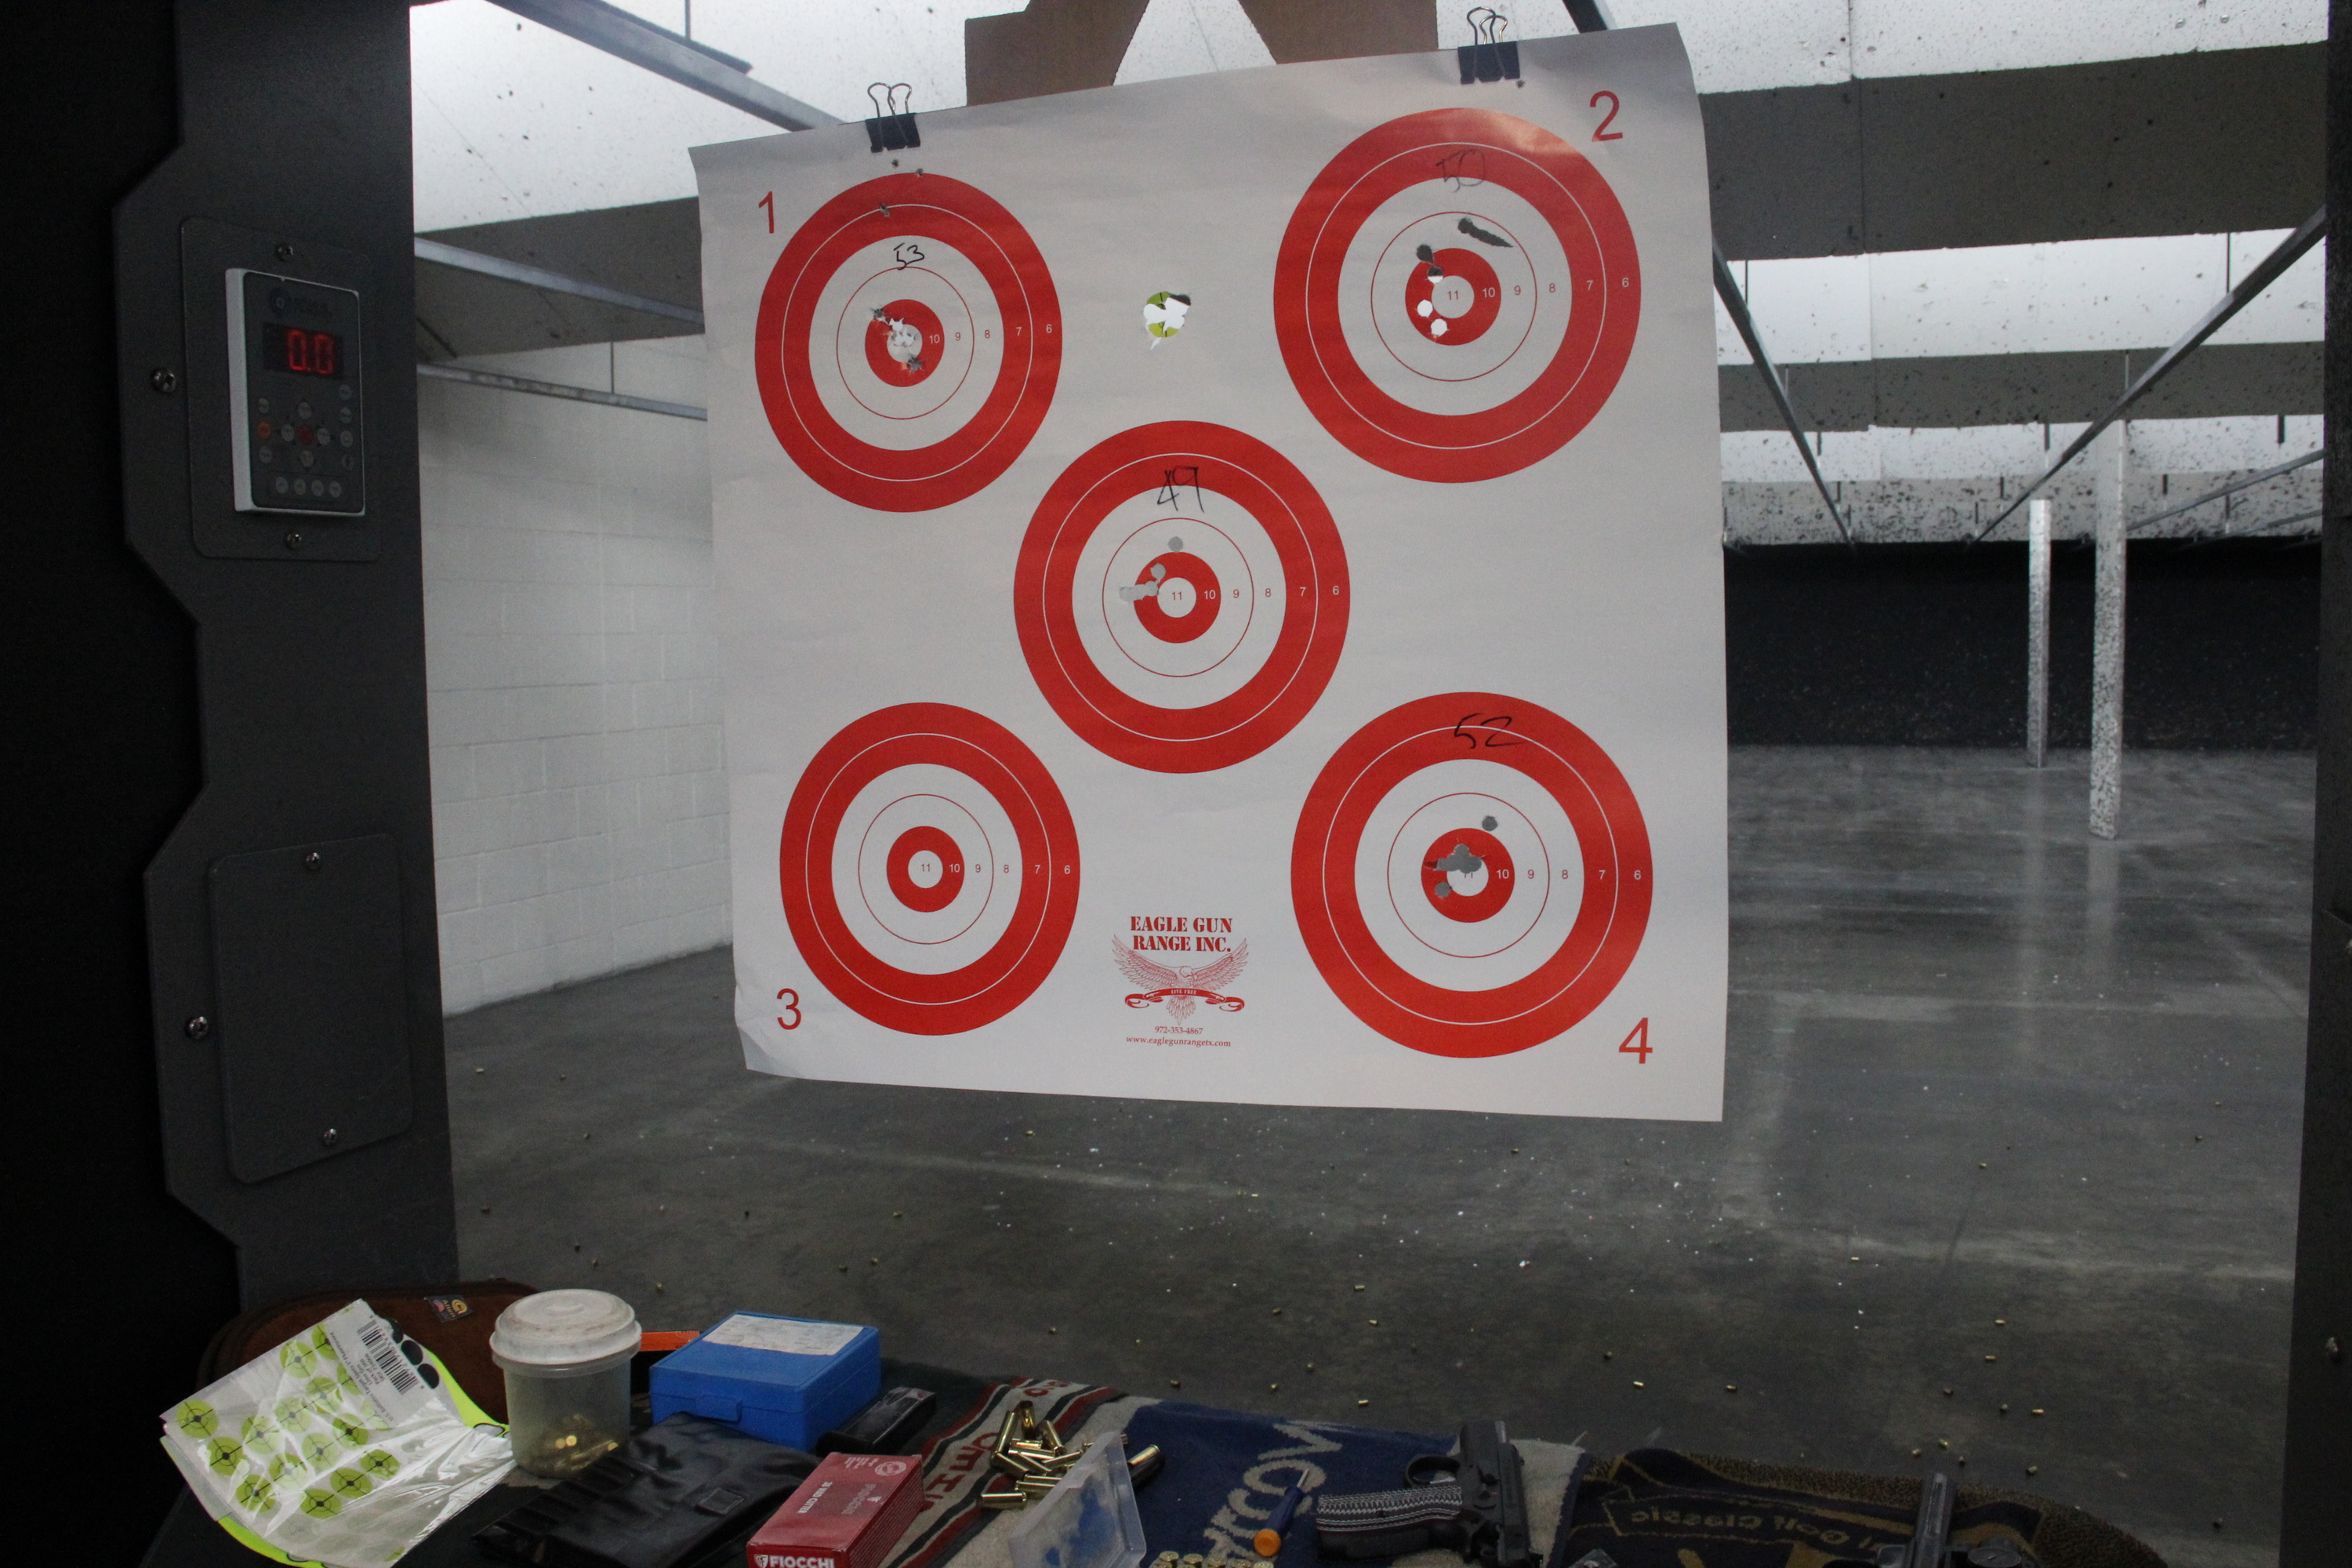 Target practice at Eagle Gun Range in Lewisville, Texas.